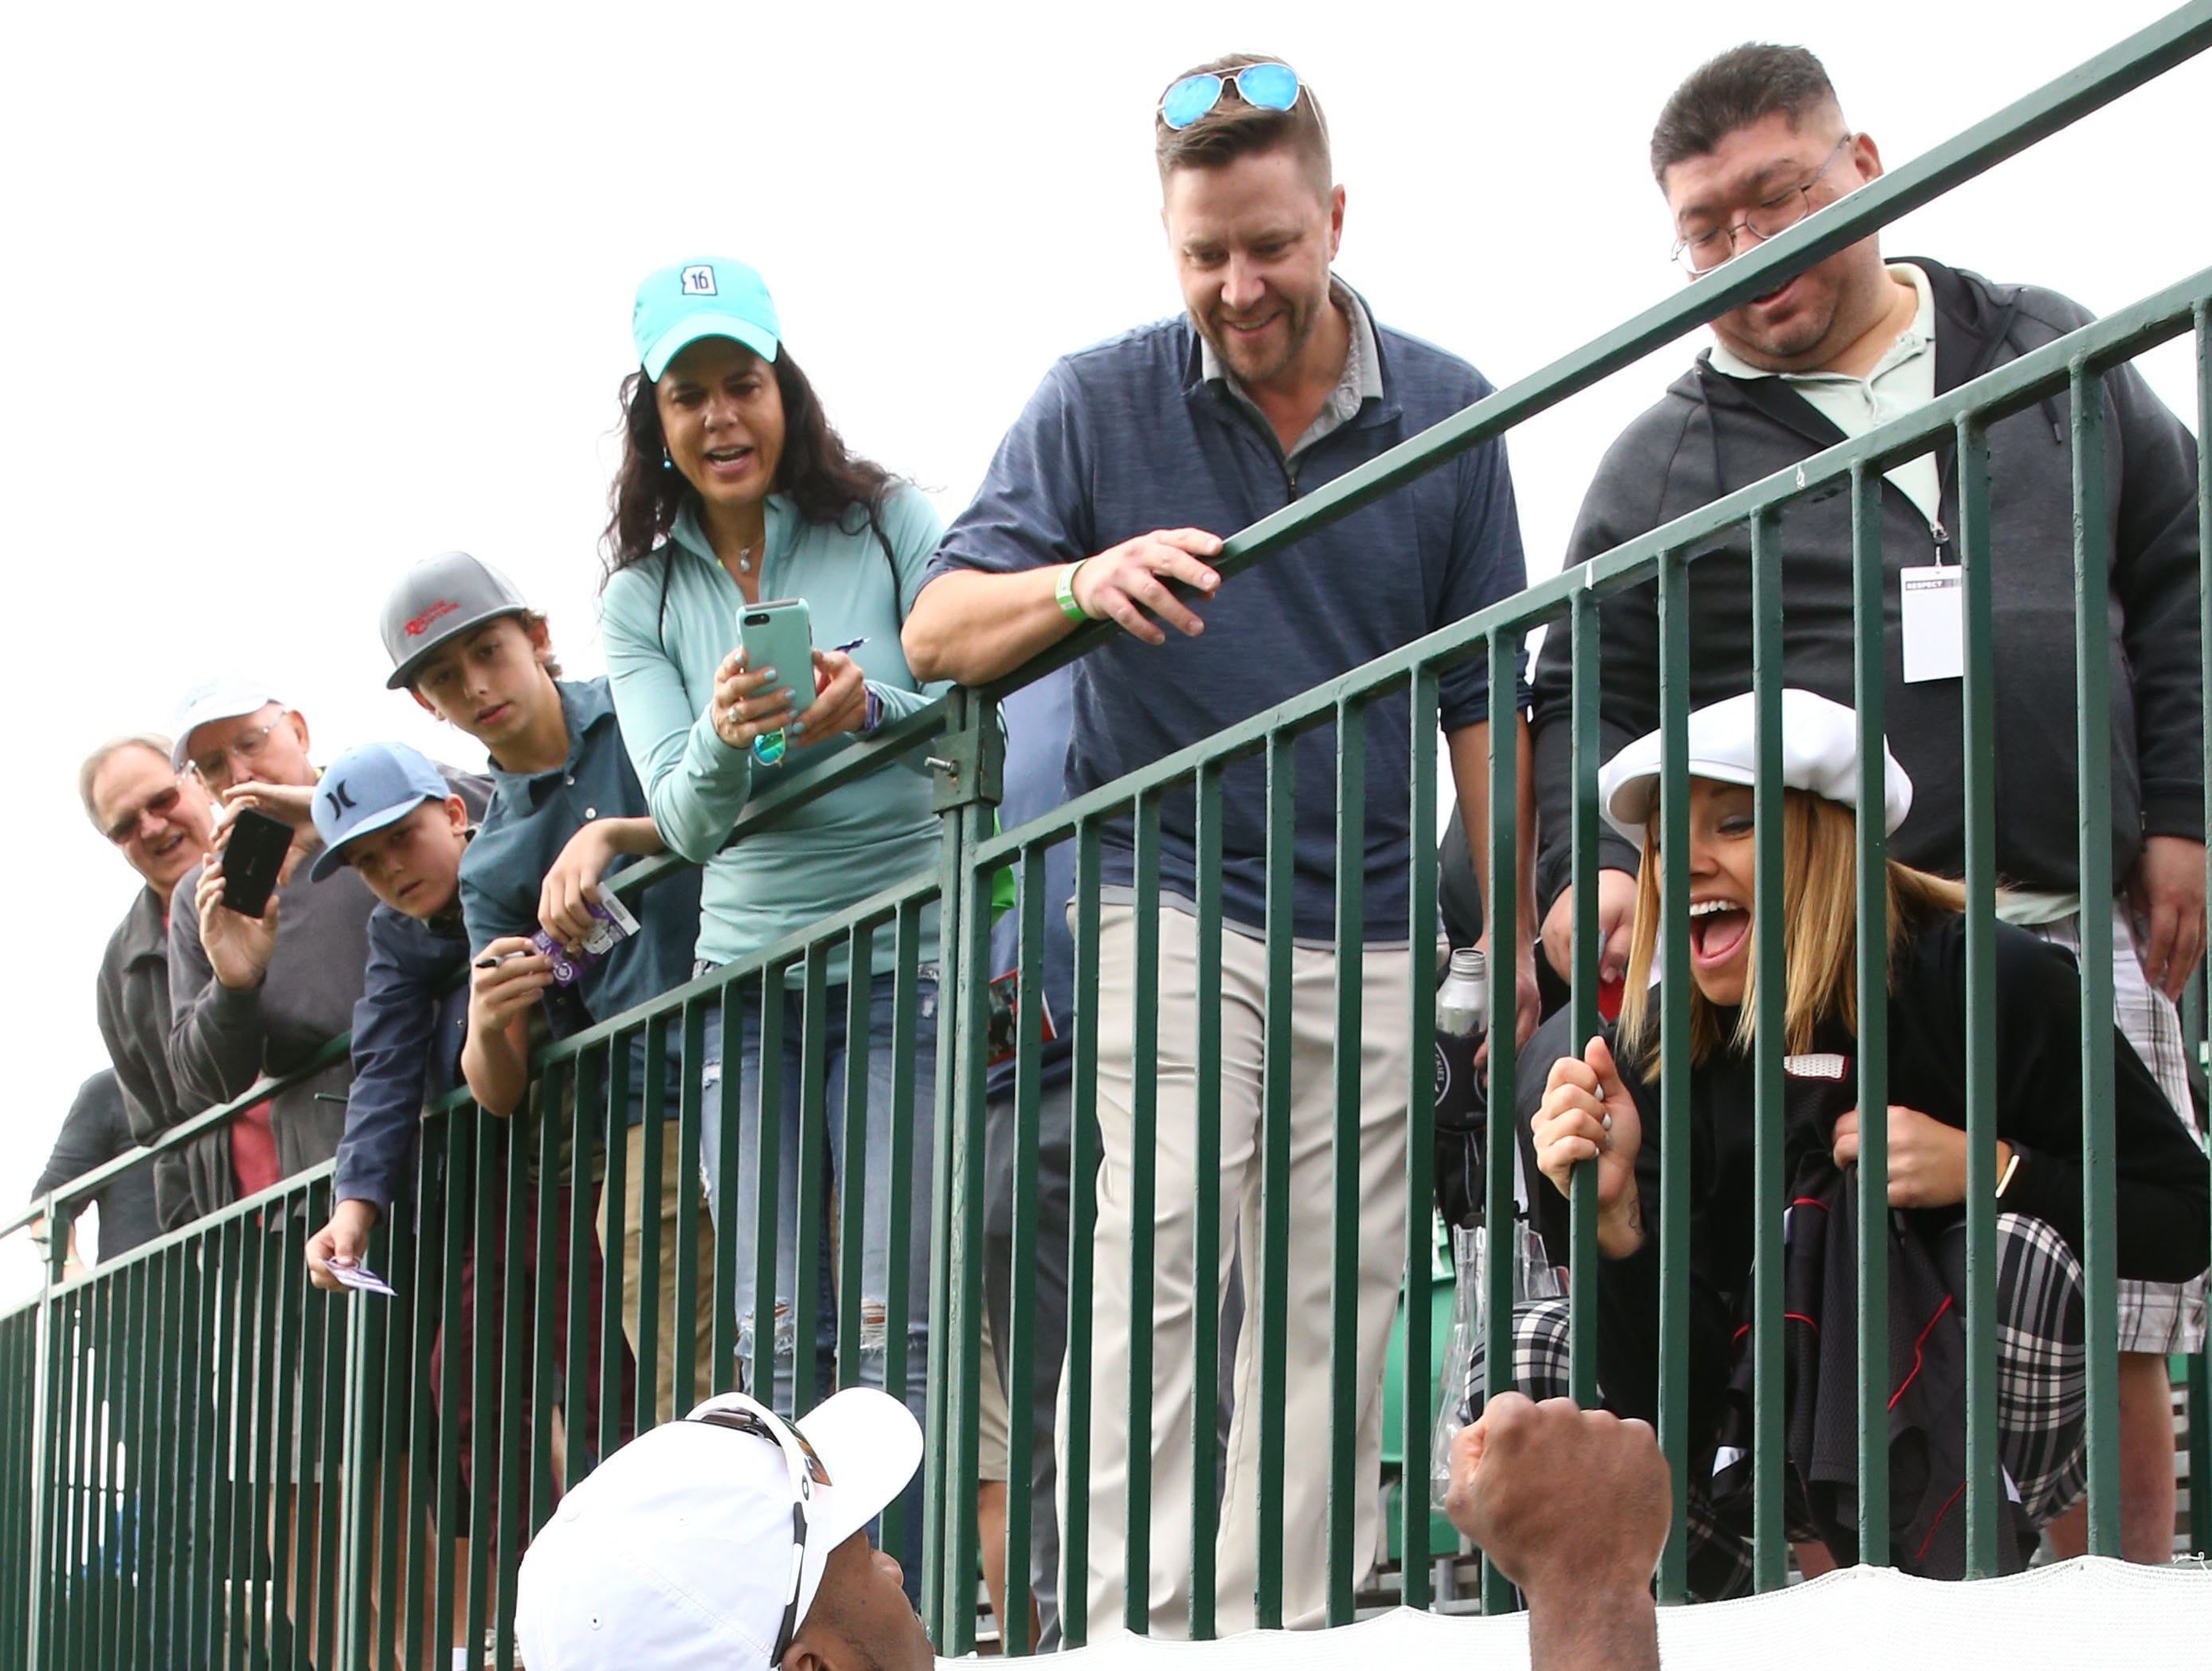 Arizona Cardinals cornerback Patrick Peterson greets a screaming fan during the Annexus Pro-Am on Jan. 30 at the TPC Scottsdale Stadium Course.